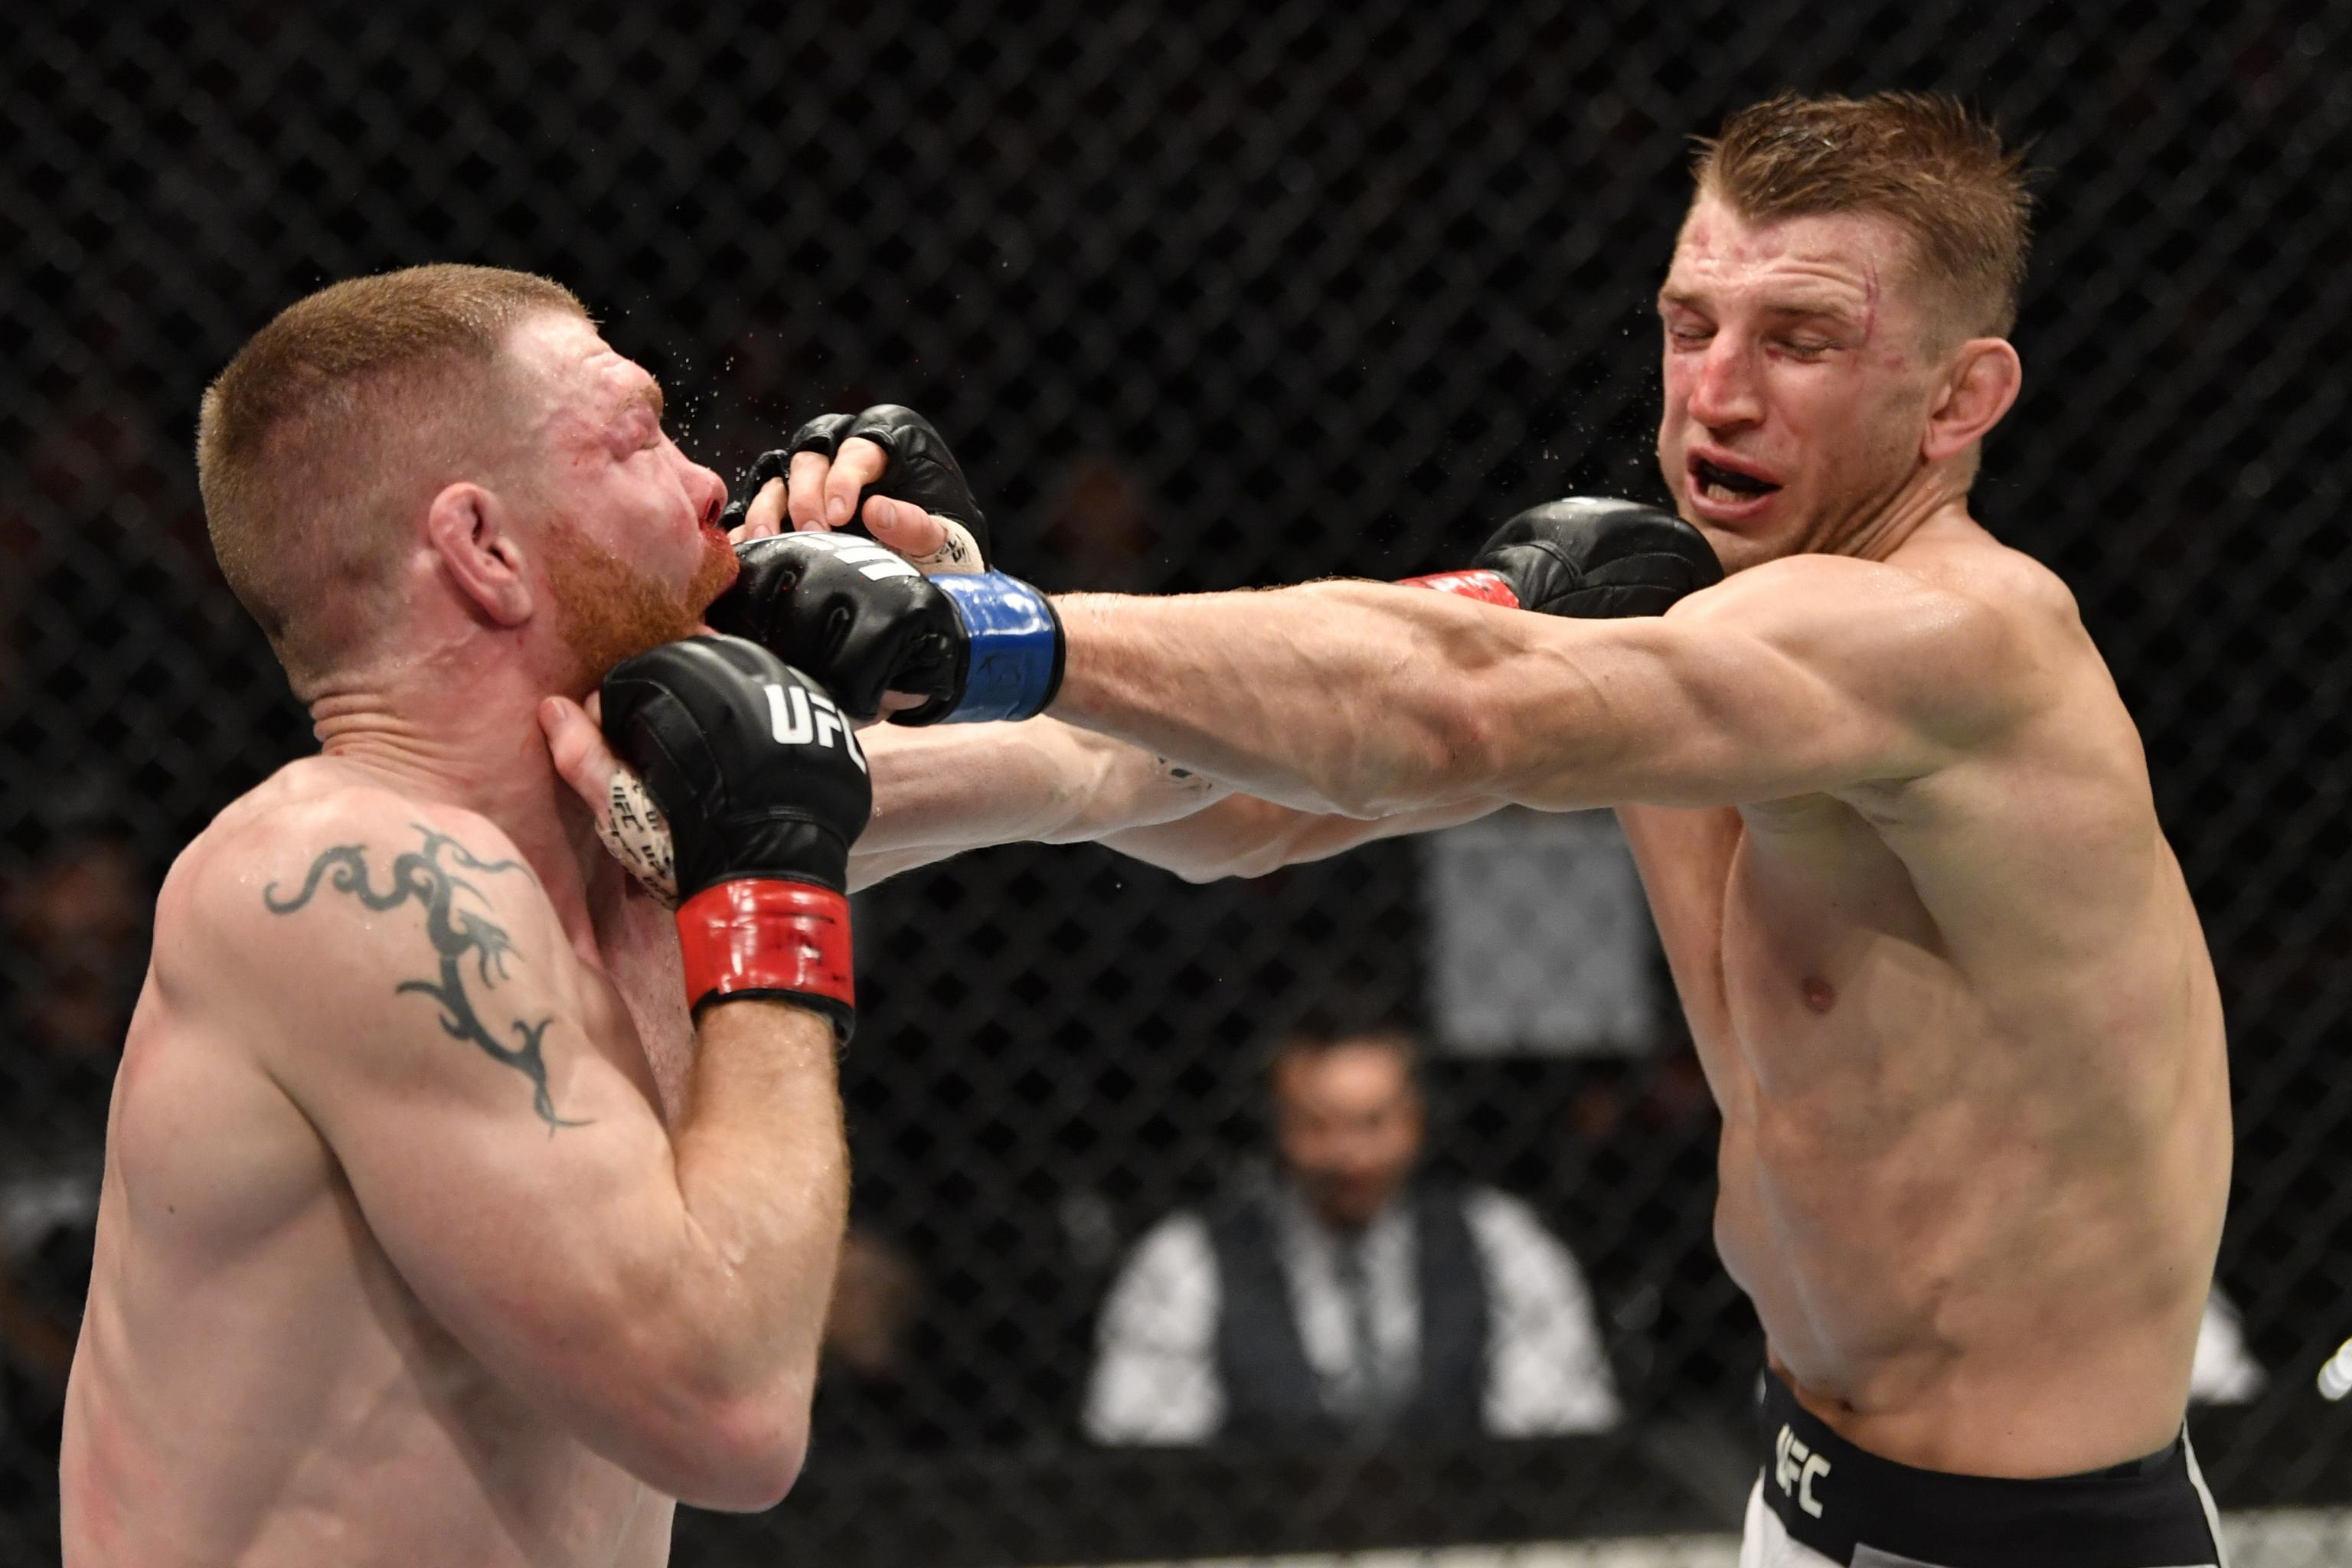 Ufc Fight Night 168 Results Dan Hooker Beats Felder Via Decision In Main Event Bleacher Report Latest News Videos And Highlights